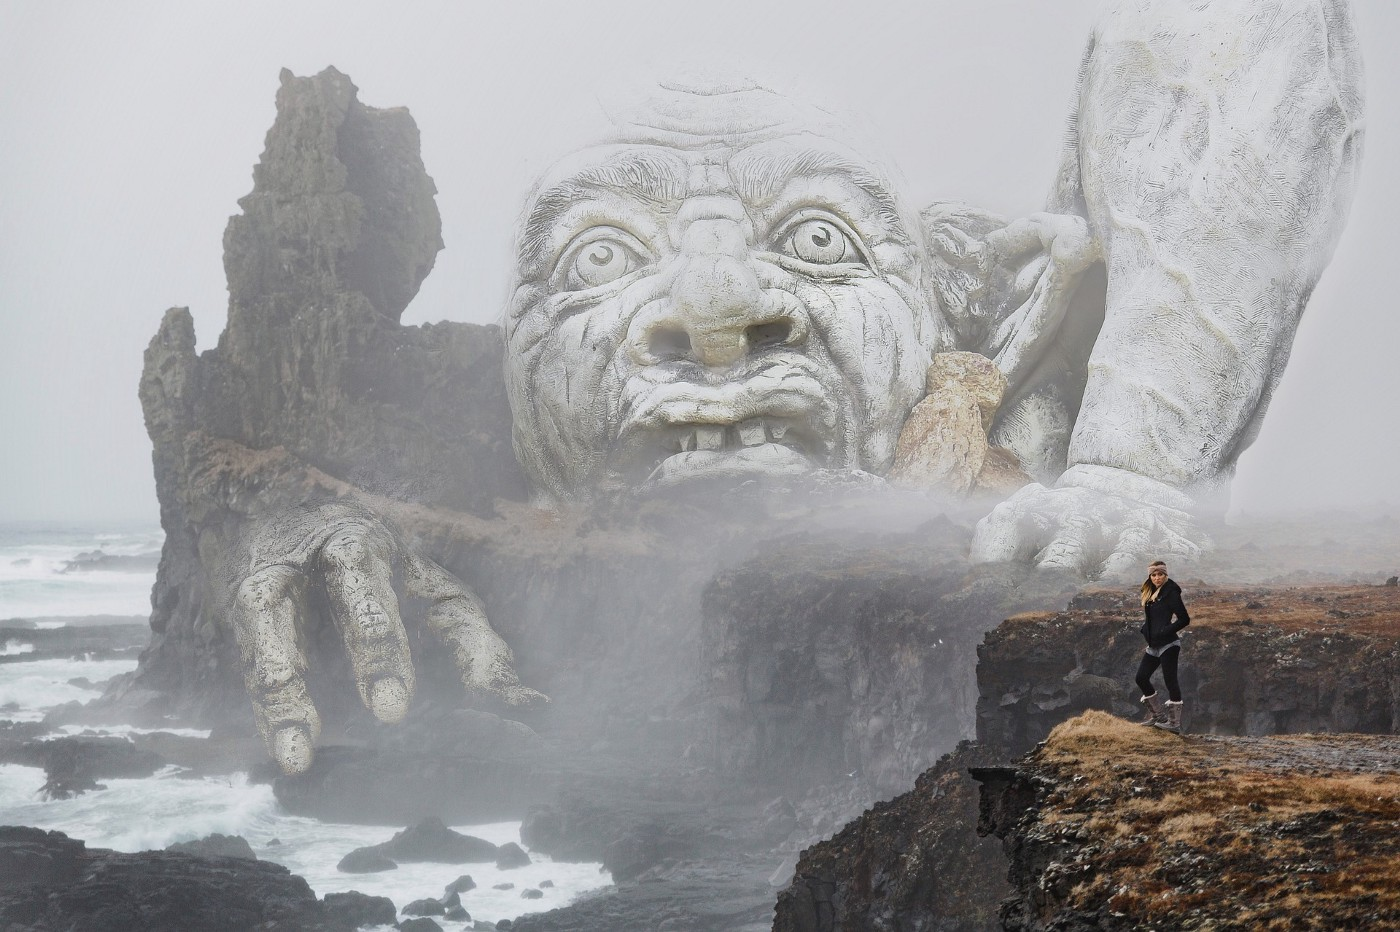 giant troll emerging from the sea